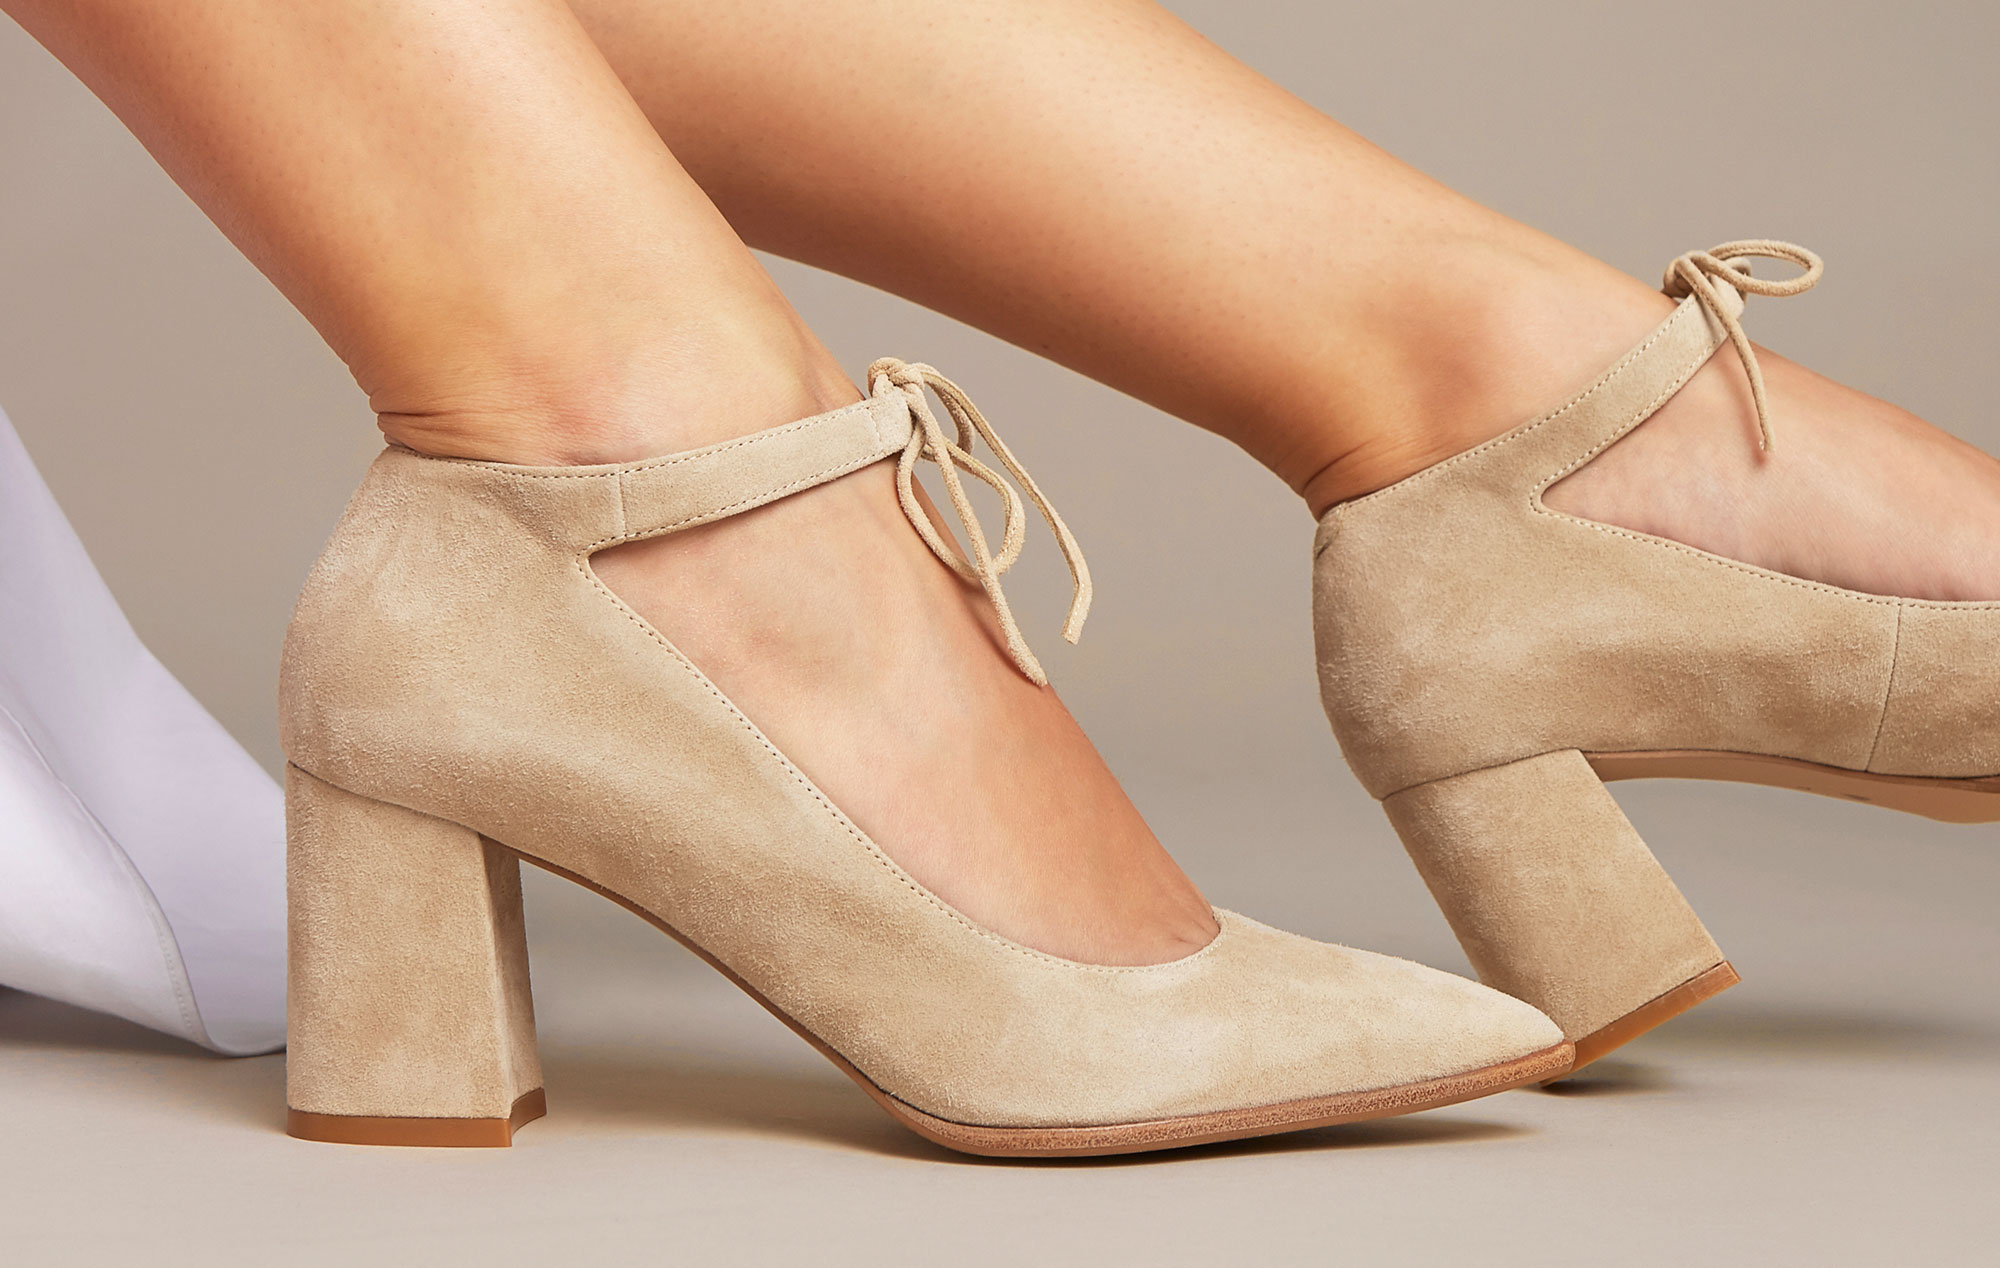 How to stretch beige suede shoes